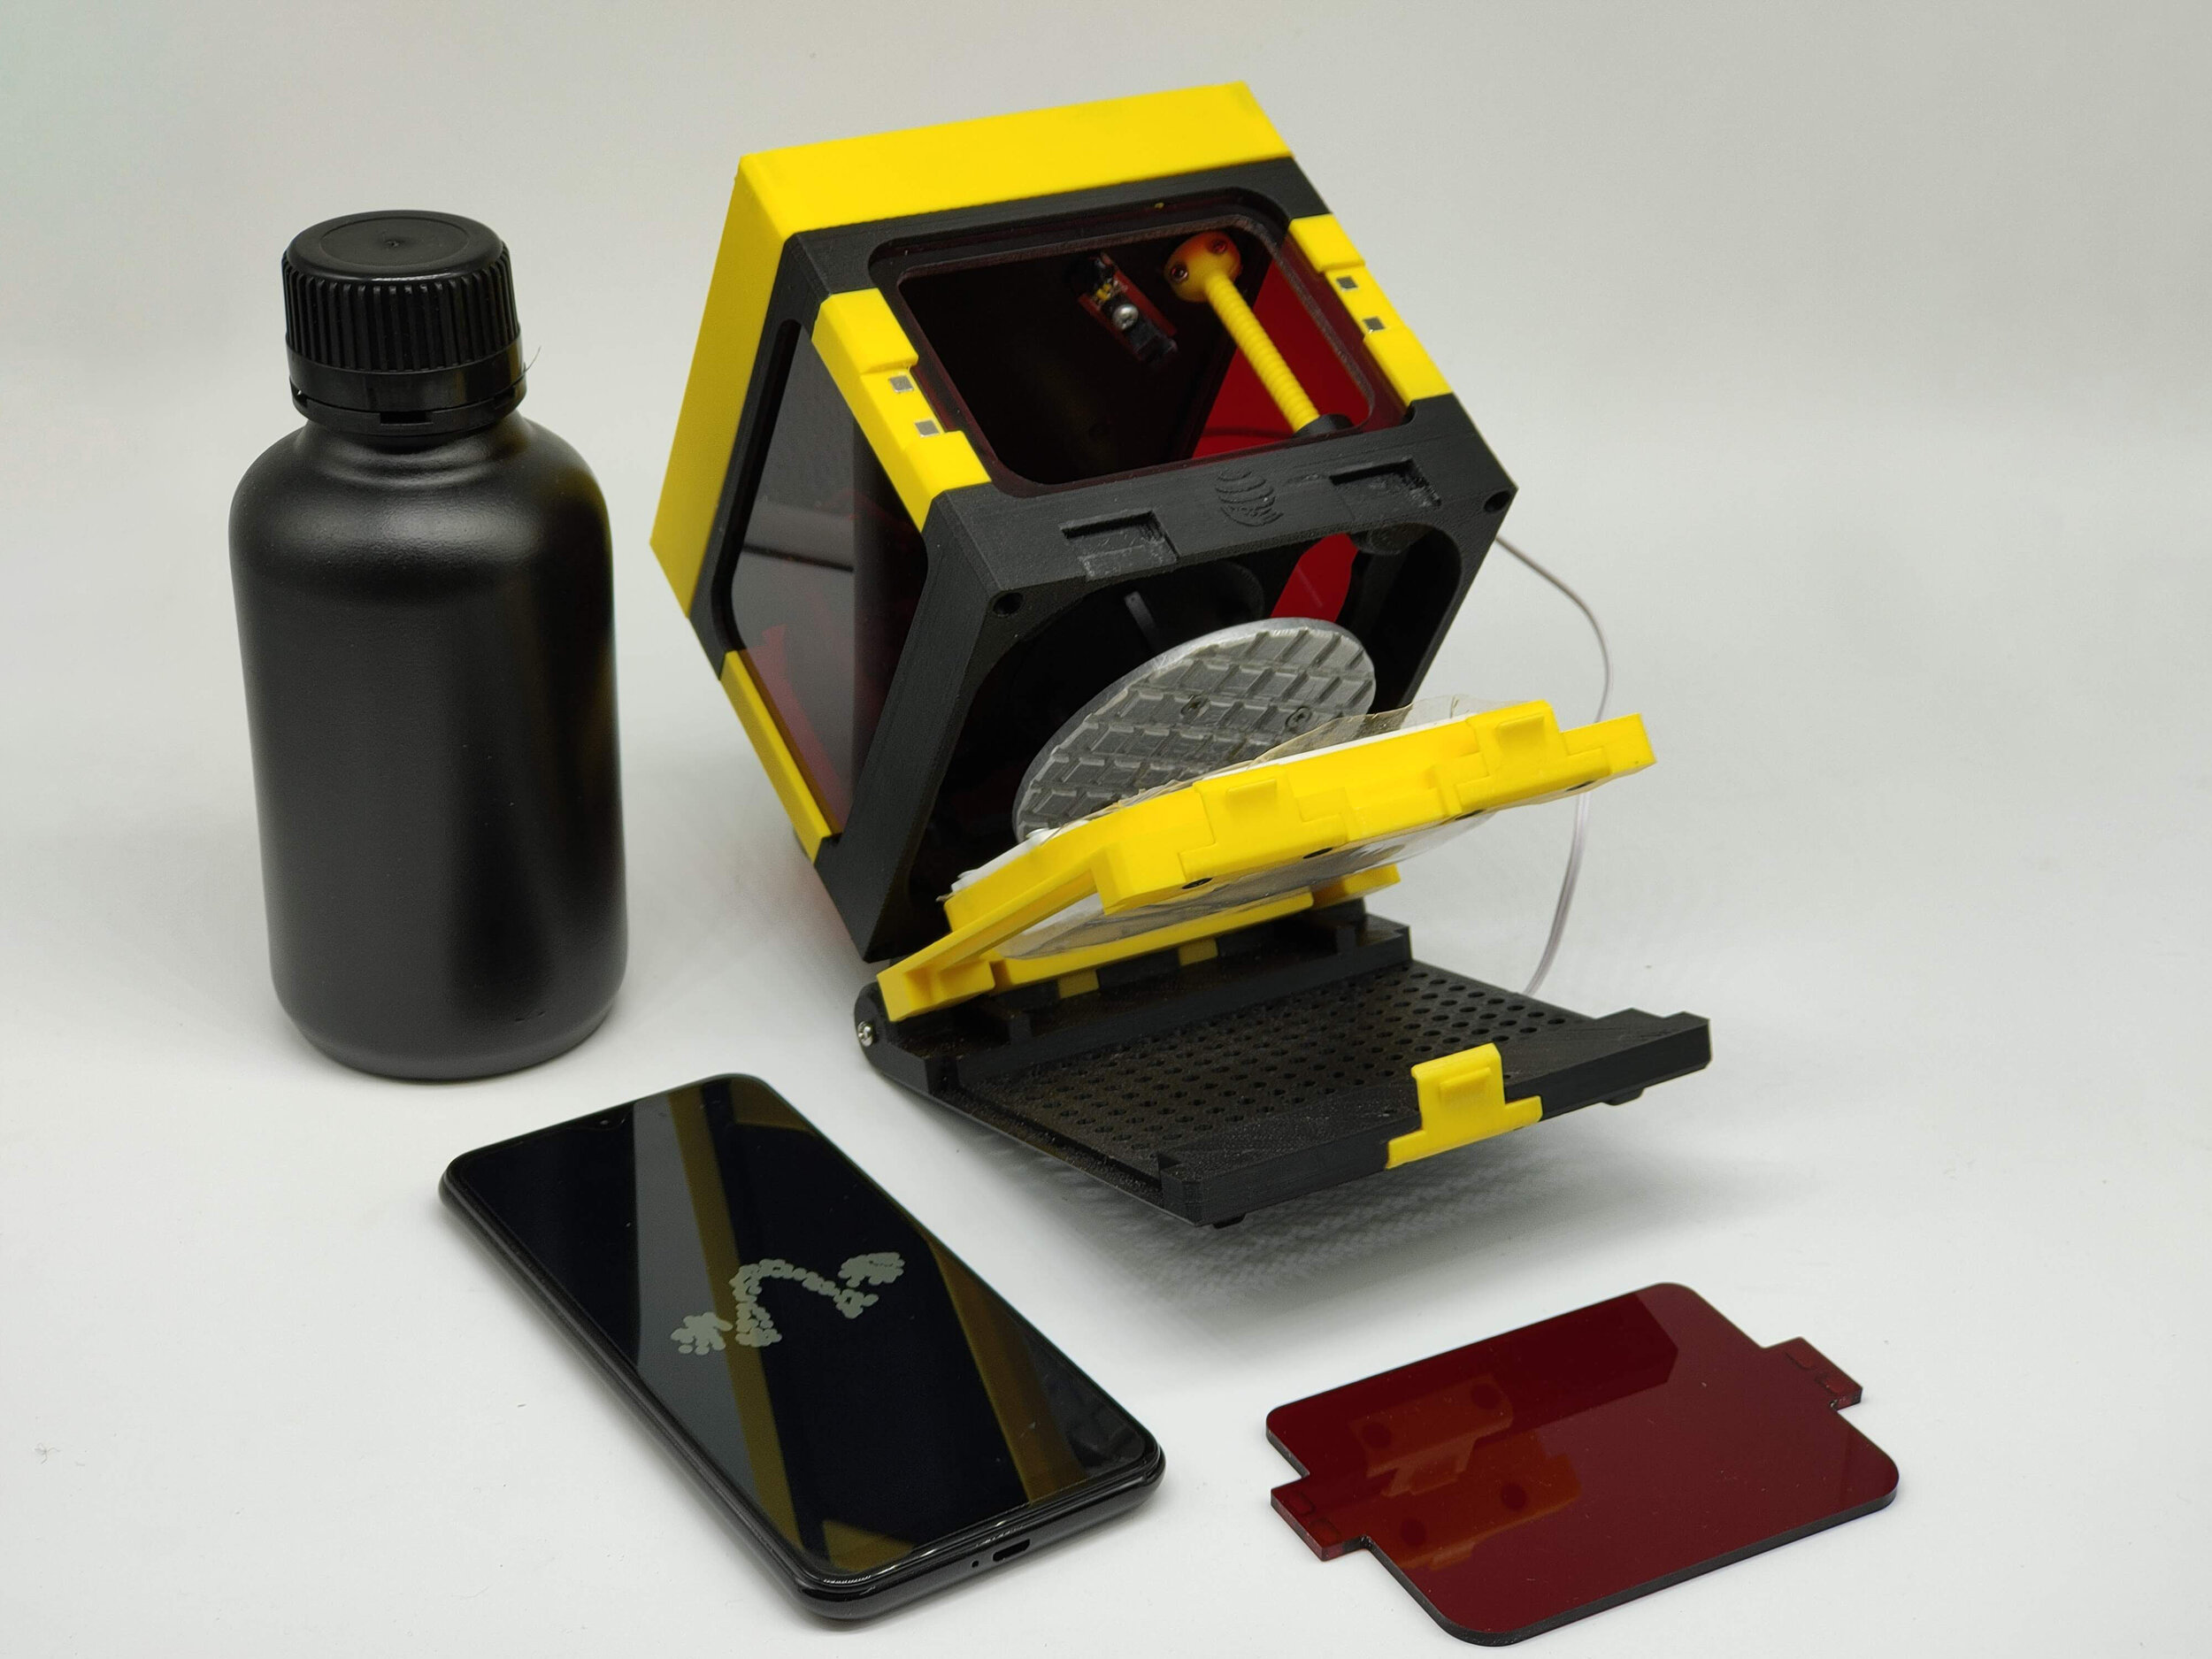 components of Lumibee low cost 3D printer